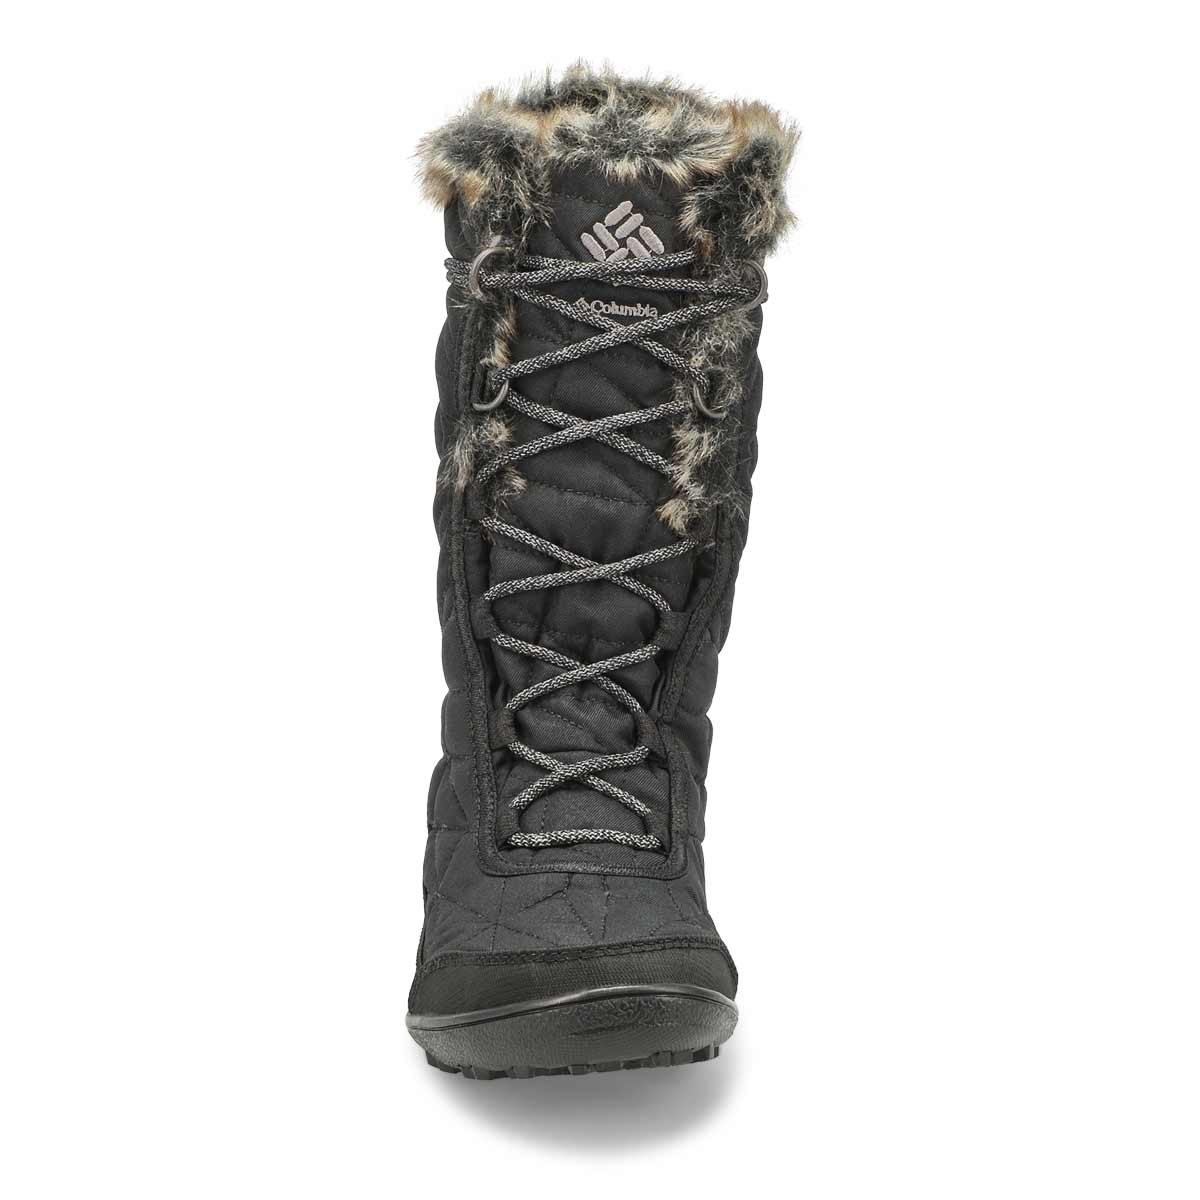 Lds Minx Mid III black wp tall wntr boot